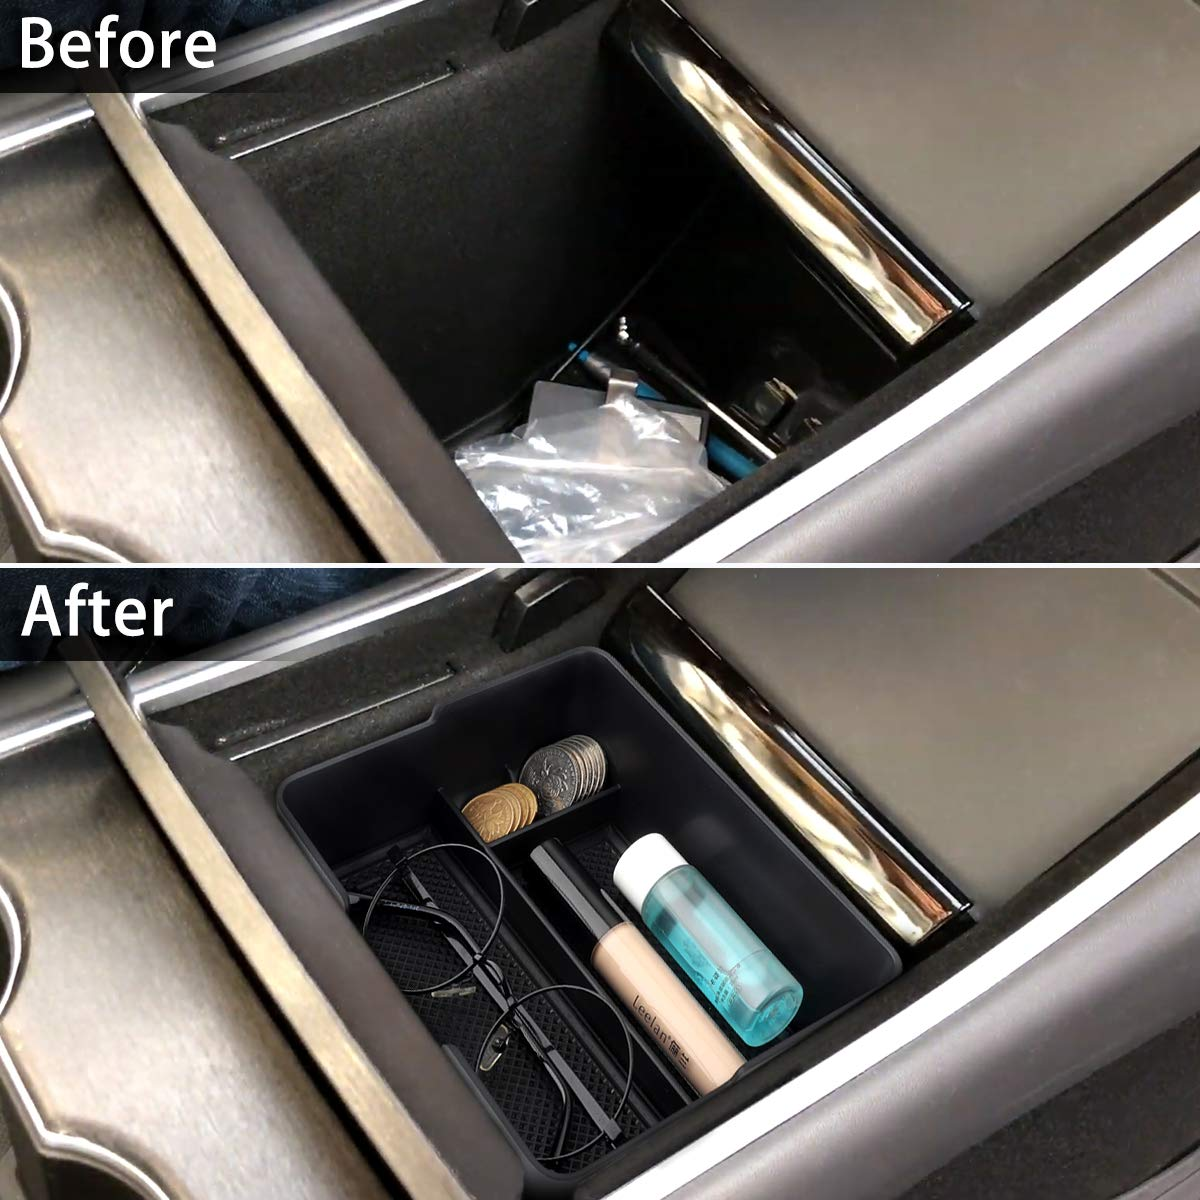 BASENOR Tesla Model 3 Center Console Organizer Tray Accessoies with Coin and Sunglass Holder for Tesla Model 3